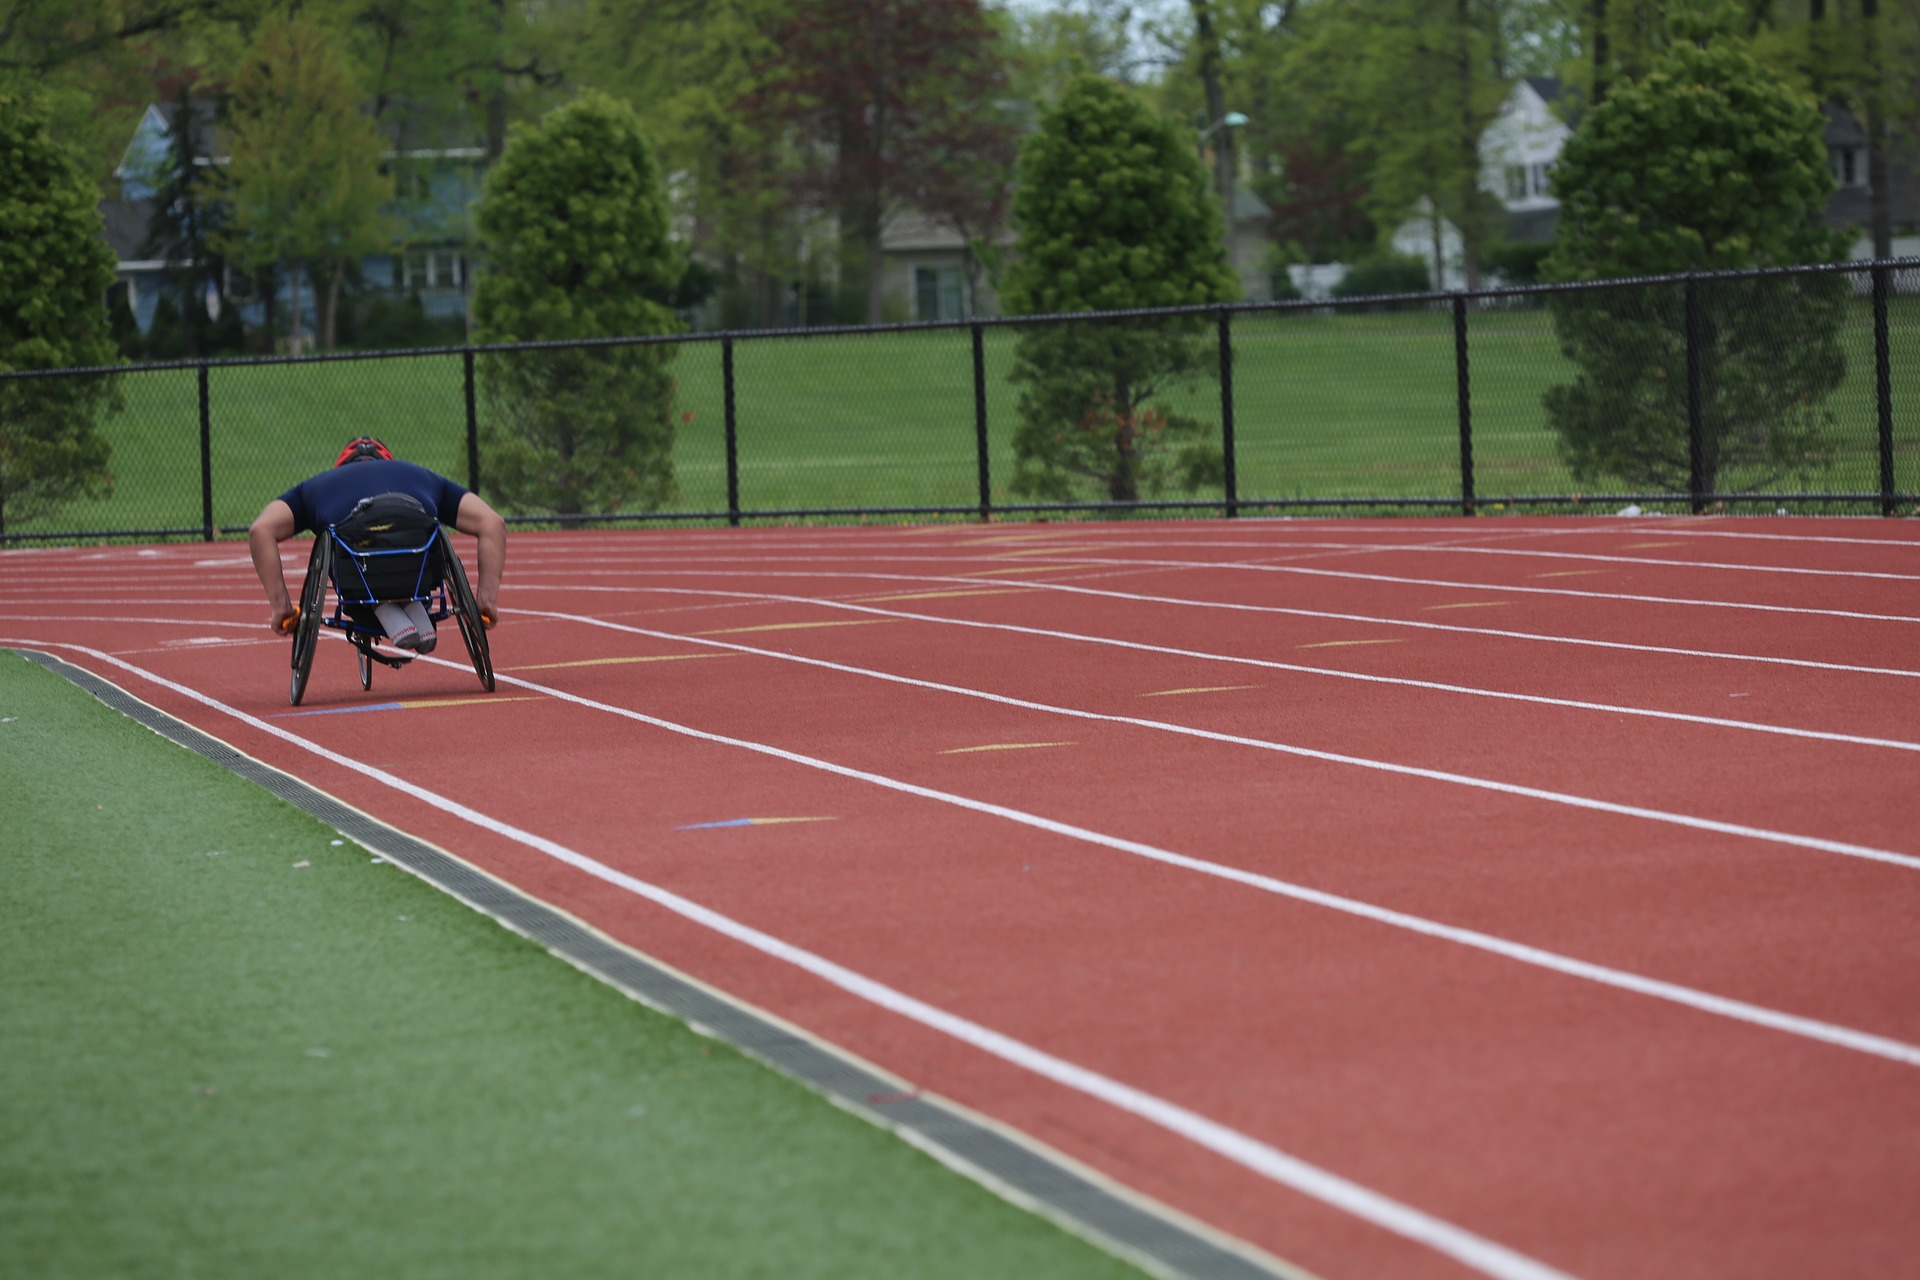 Person in wheelchair racing around track.